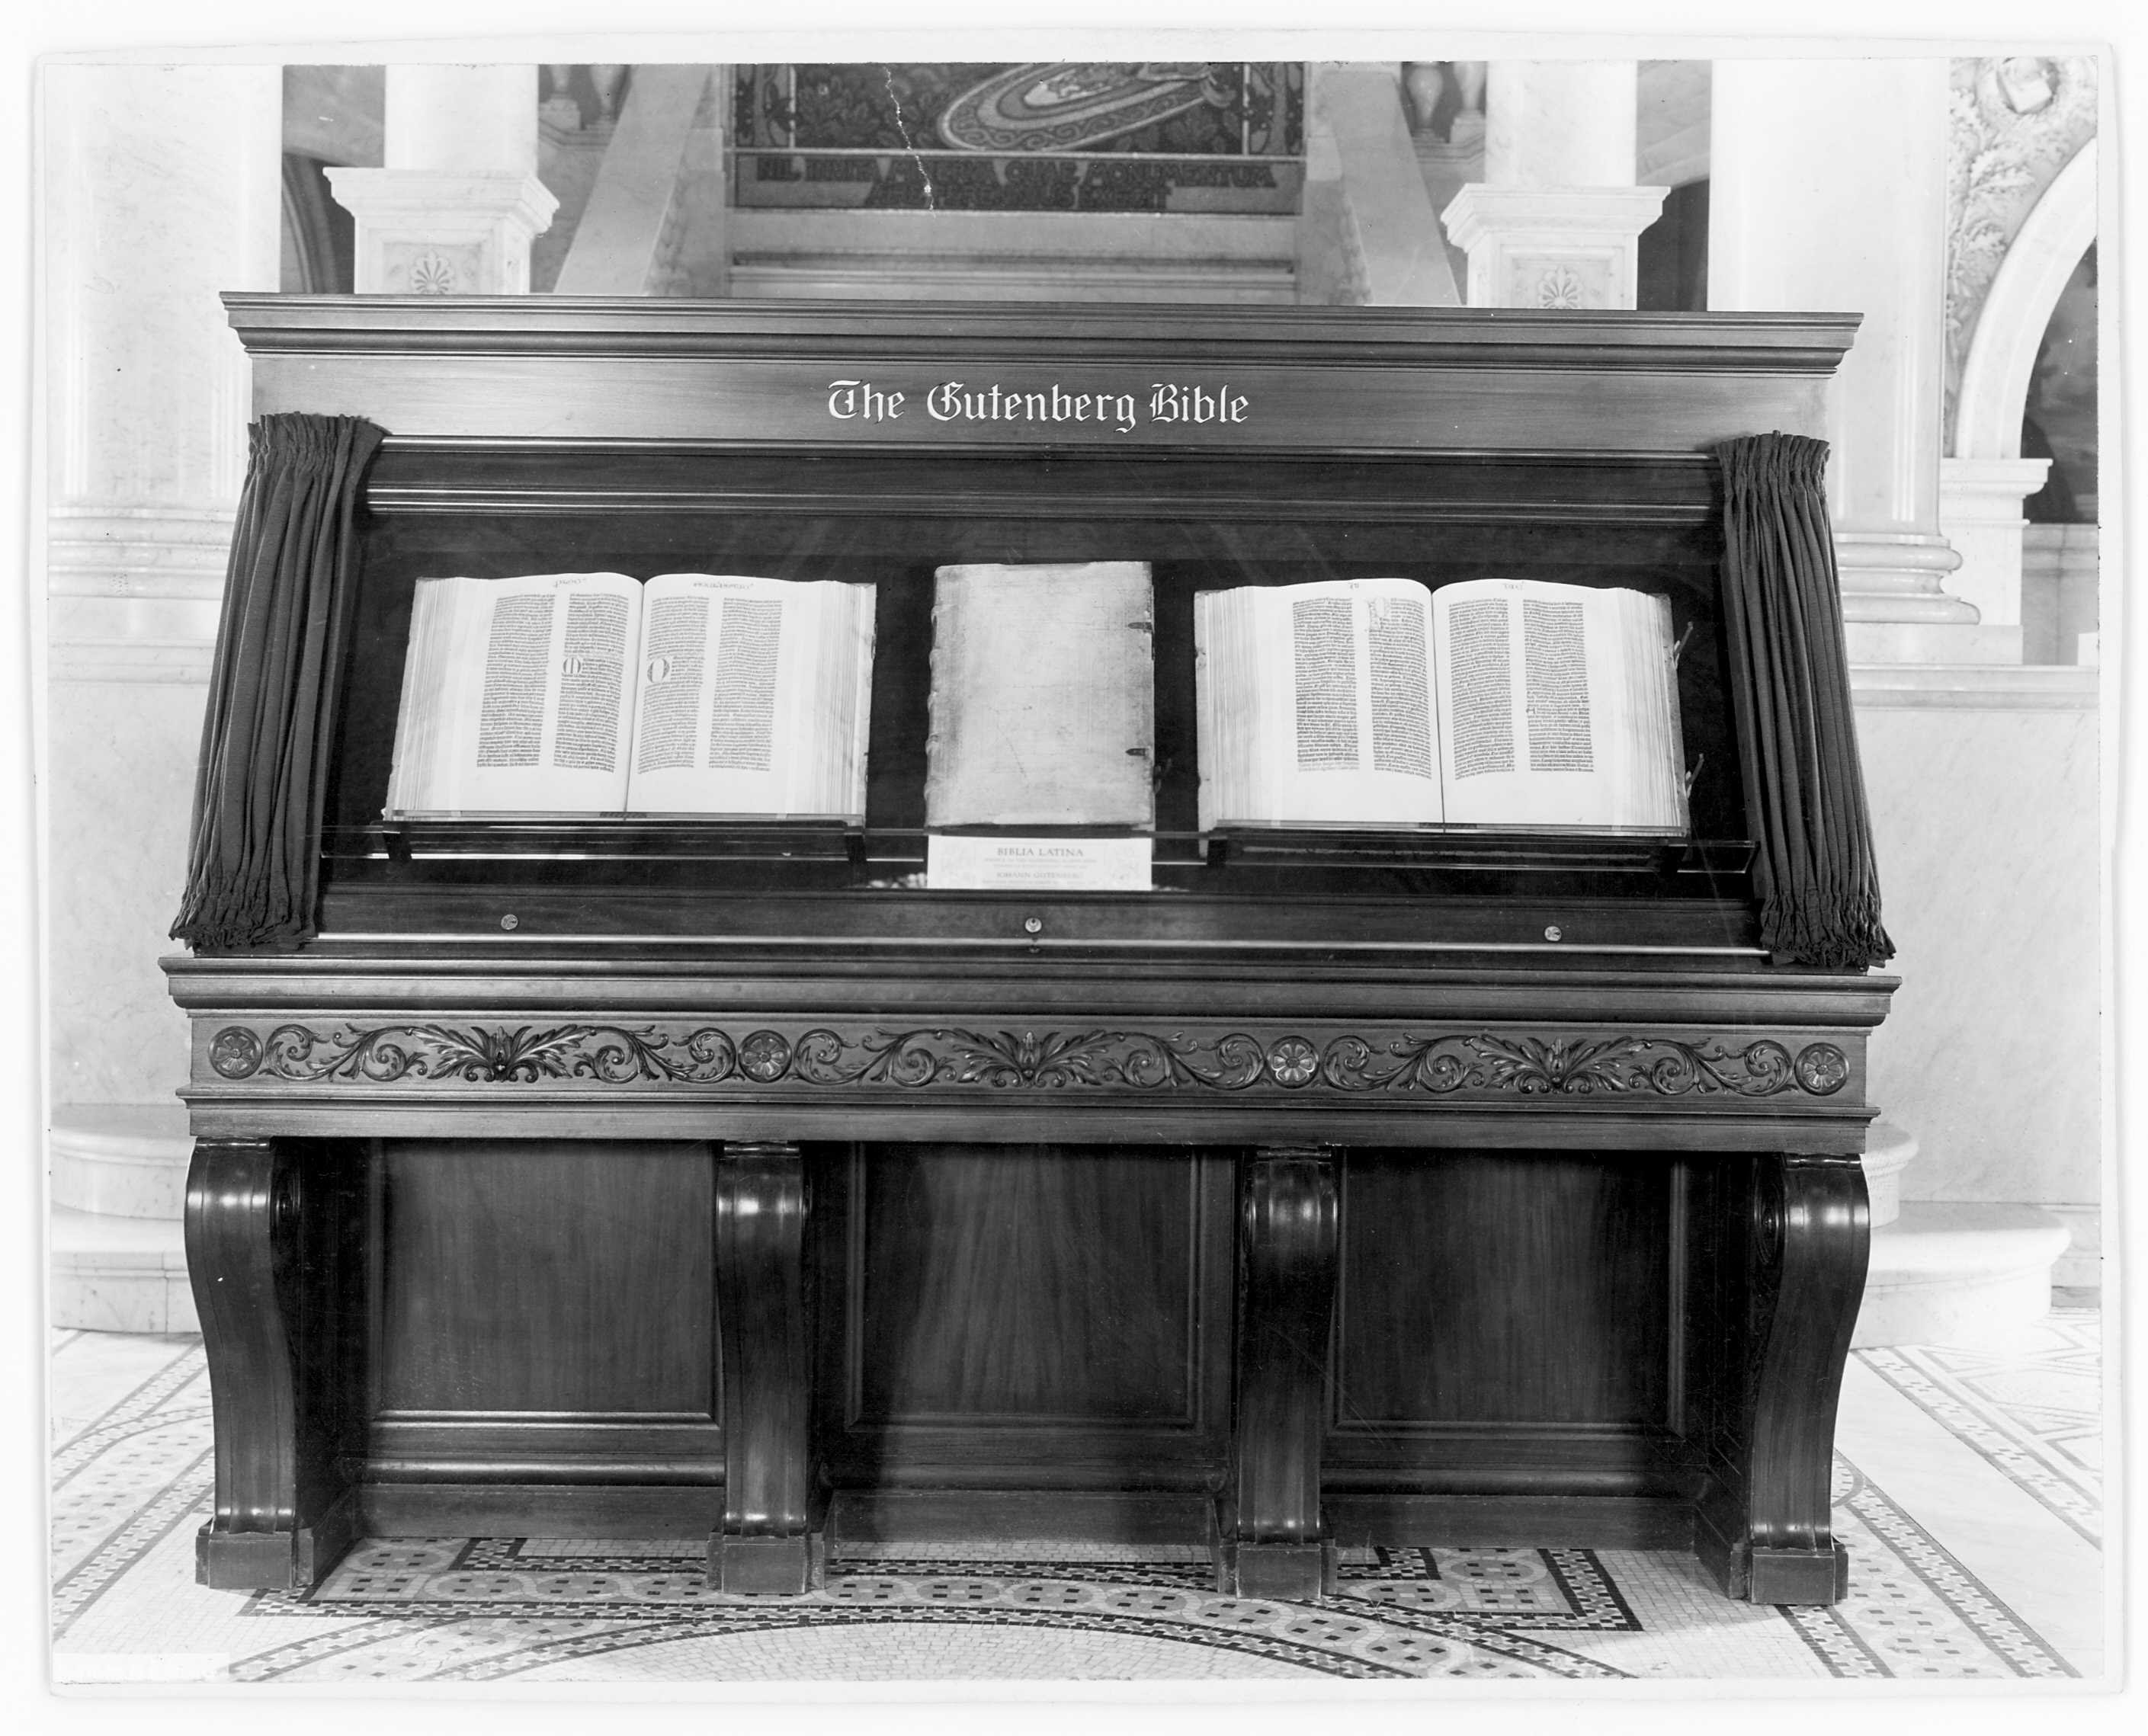 Gutenberg's Bible, Library of Congress.